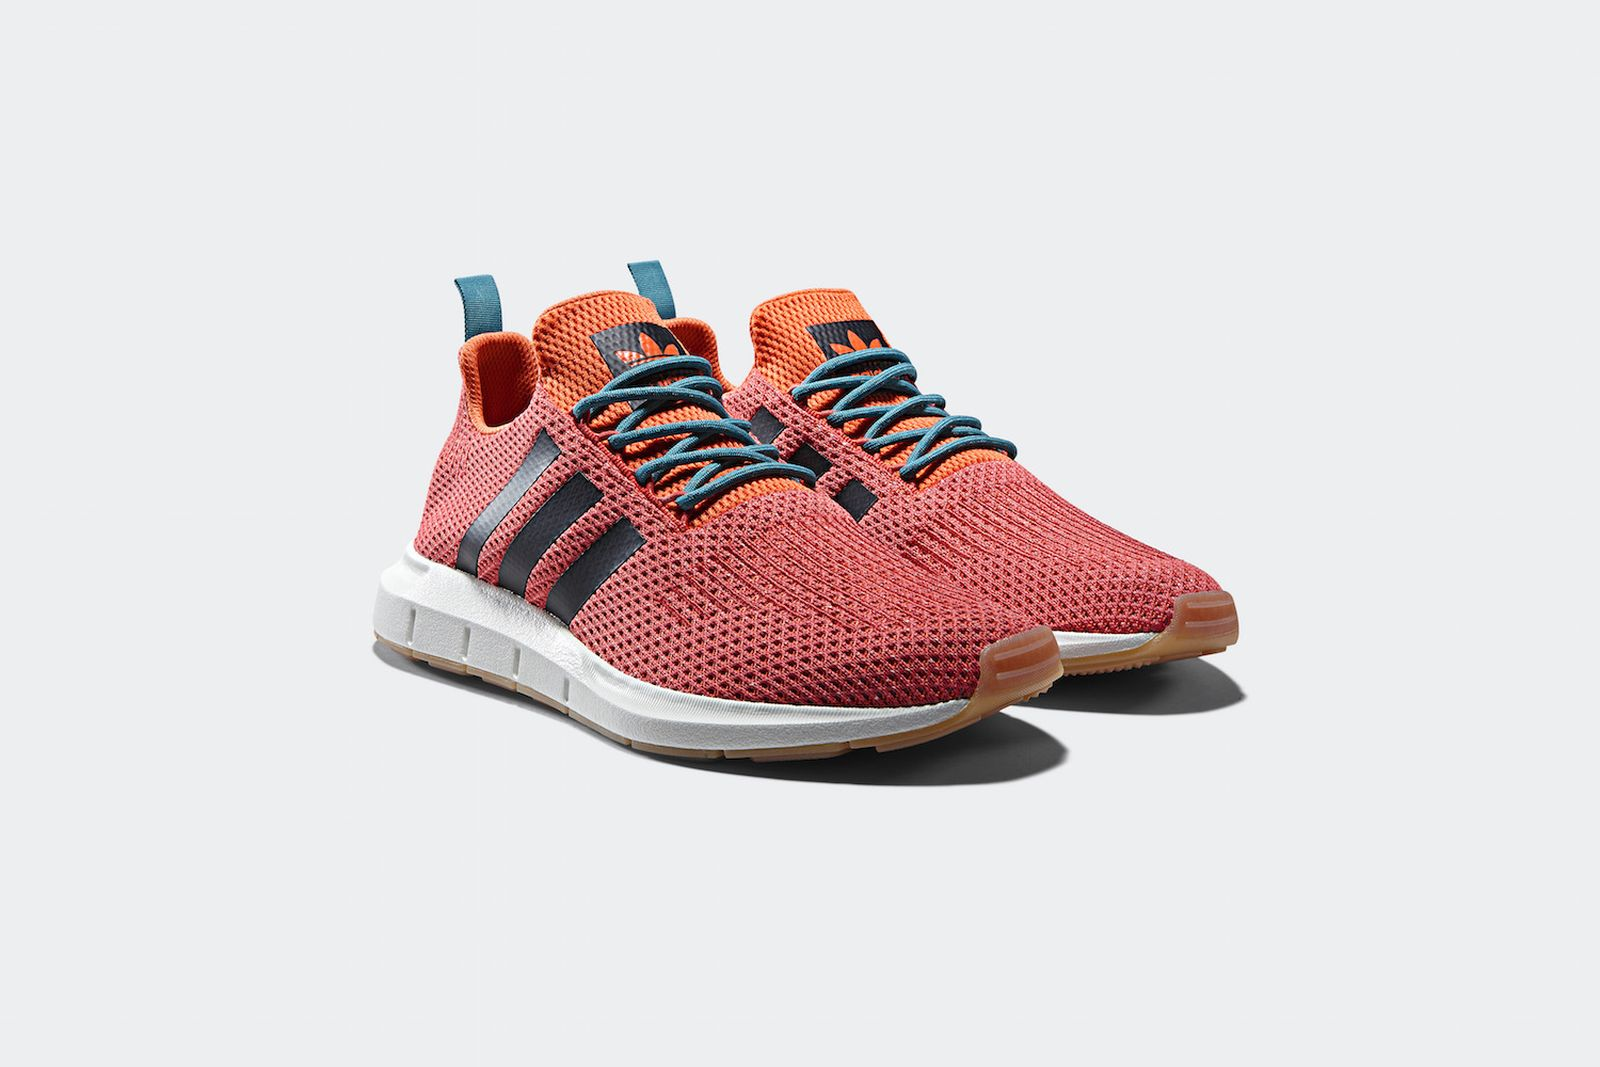 adidas-atric-summer-spice-pack-08